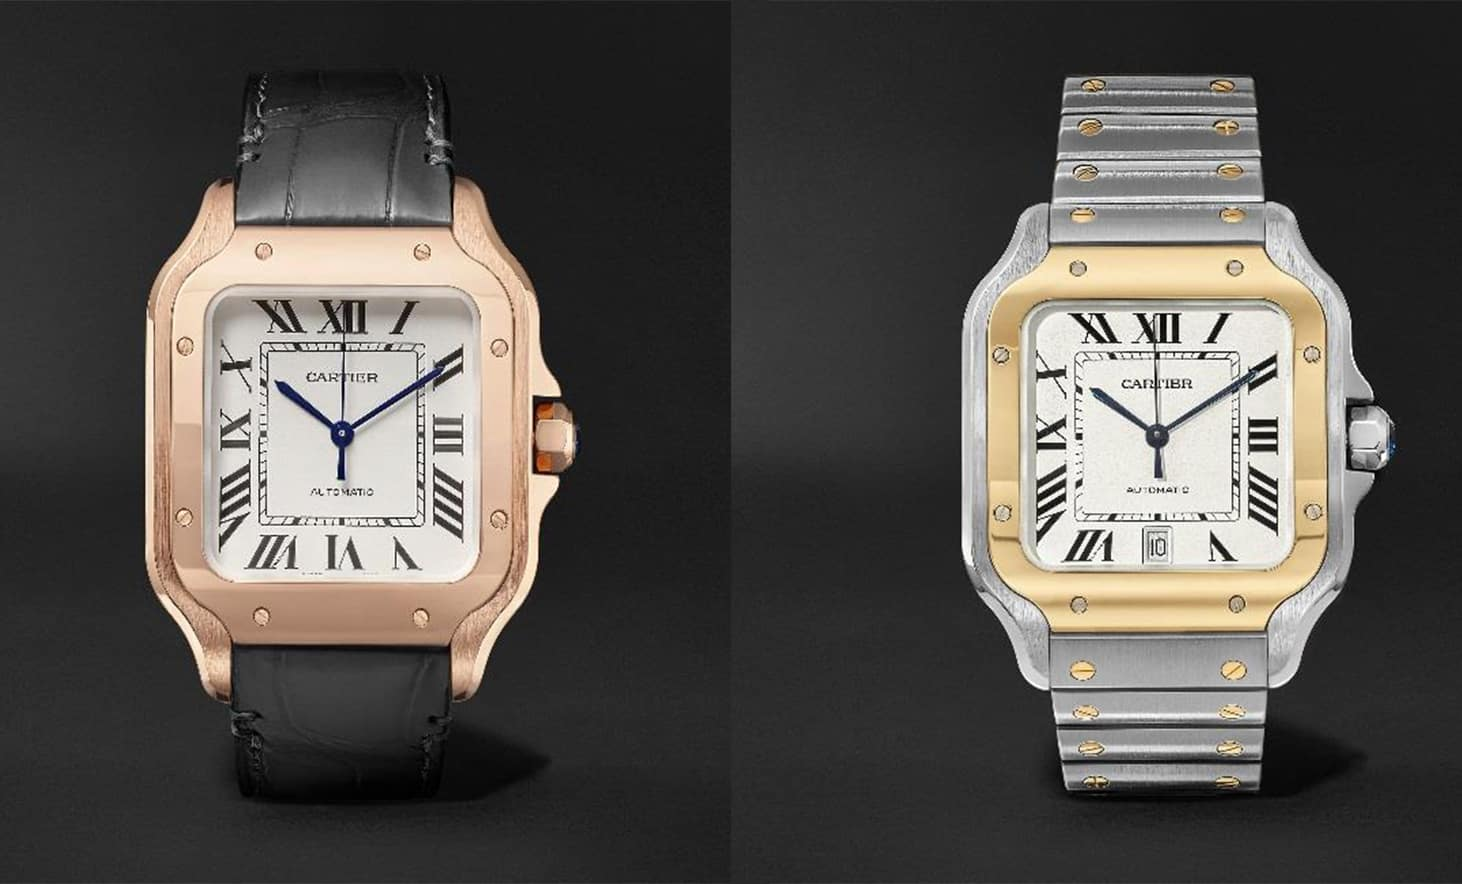 Cartier Watches Mr Porter To Launch Cartier Watches Next Month